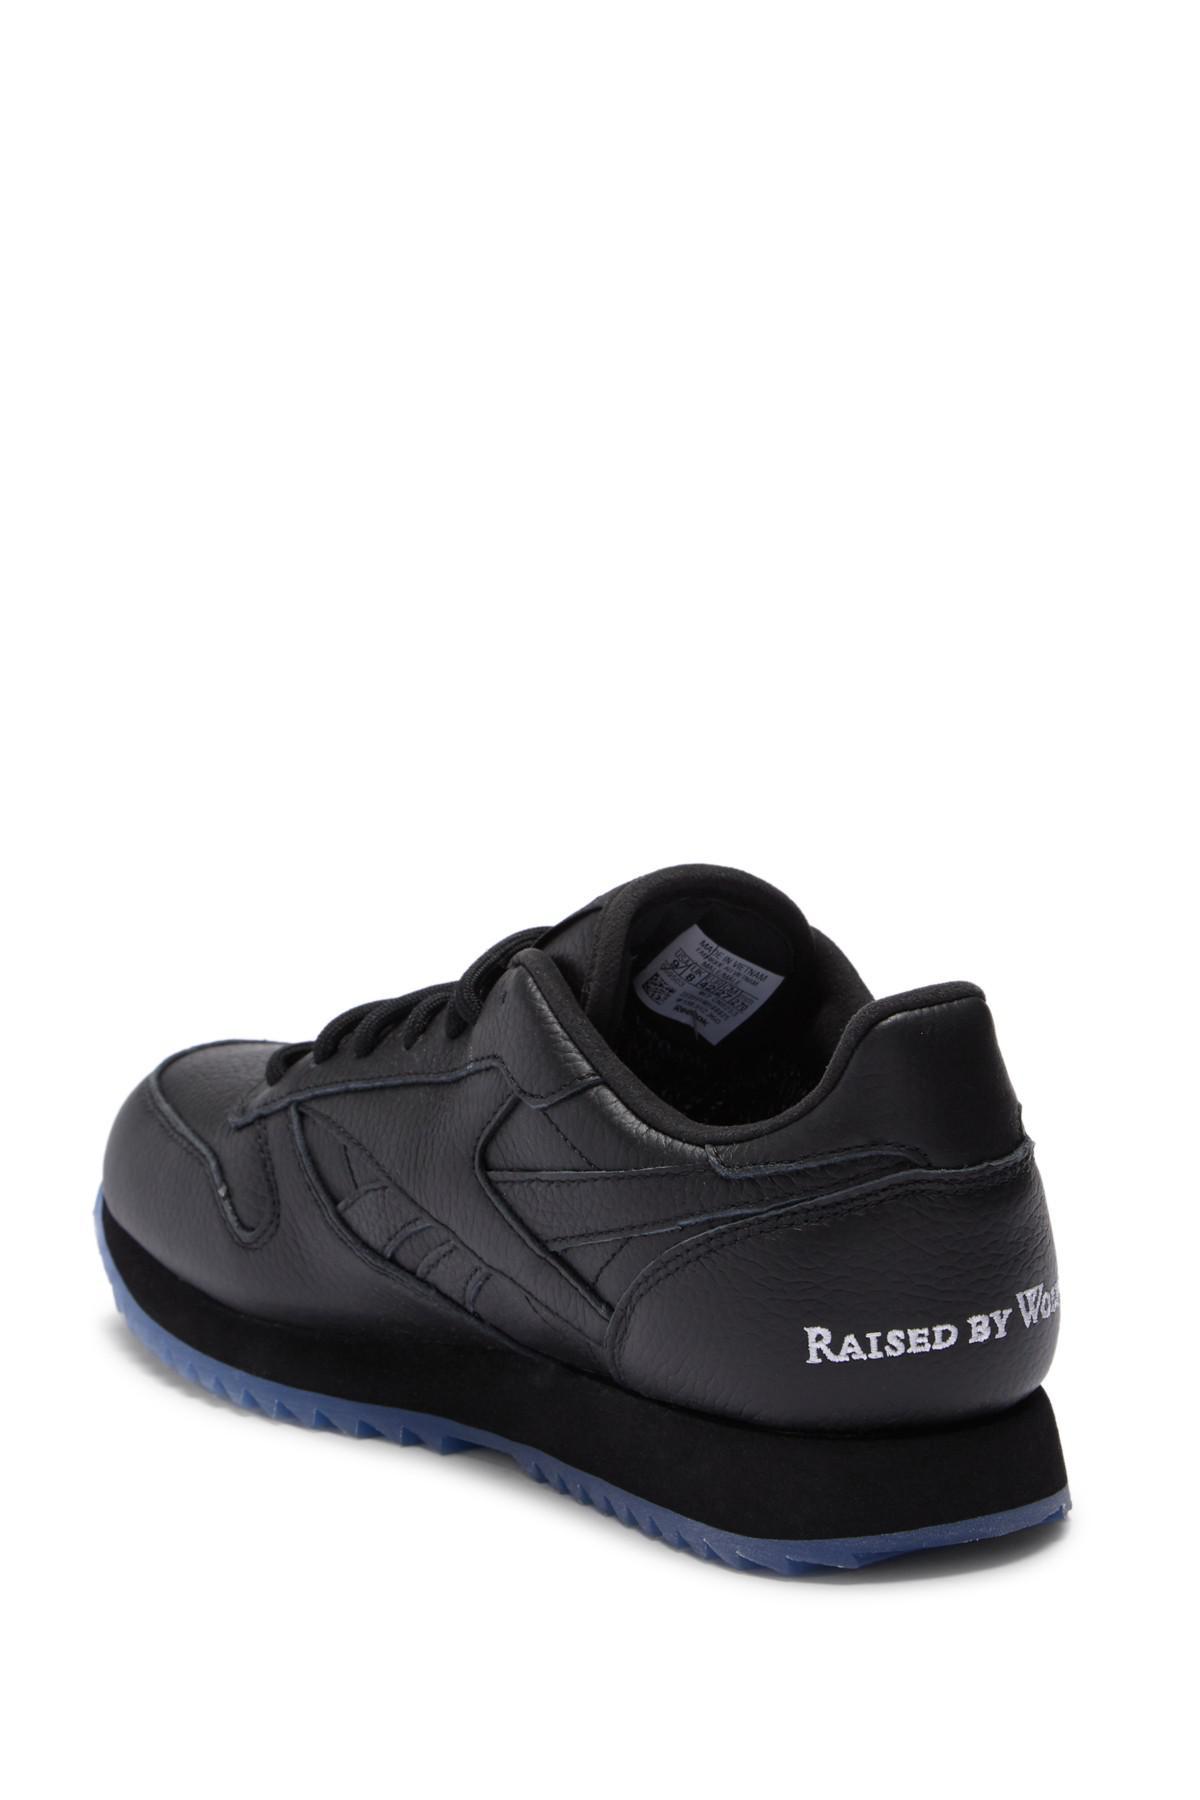 Classic Leather Ripple Gore tex By Wolves Waterproof Sneaker